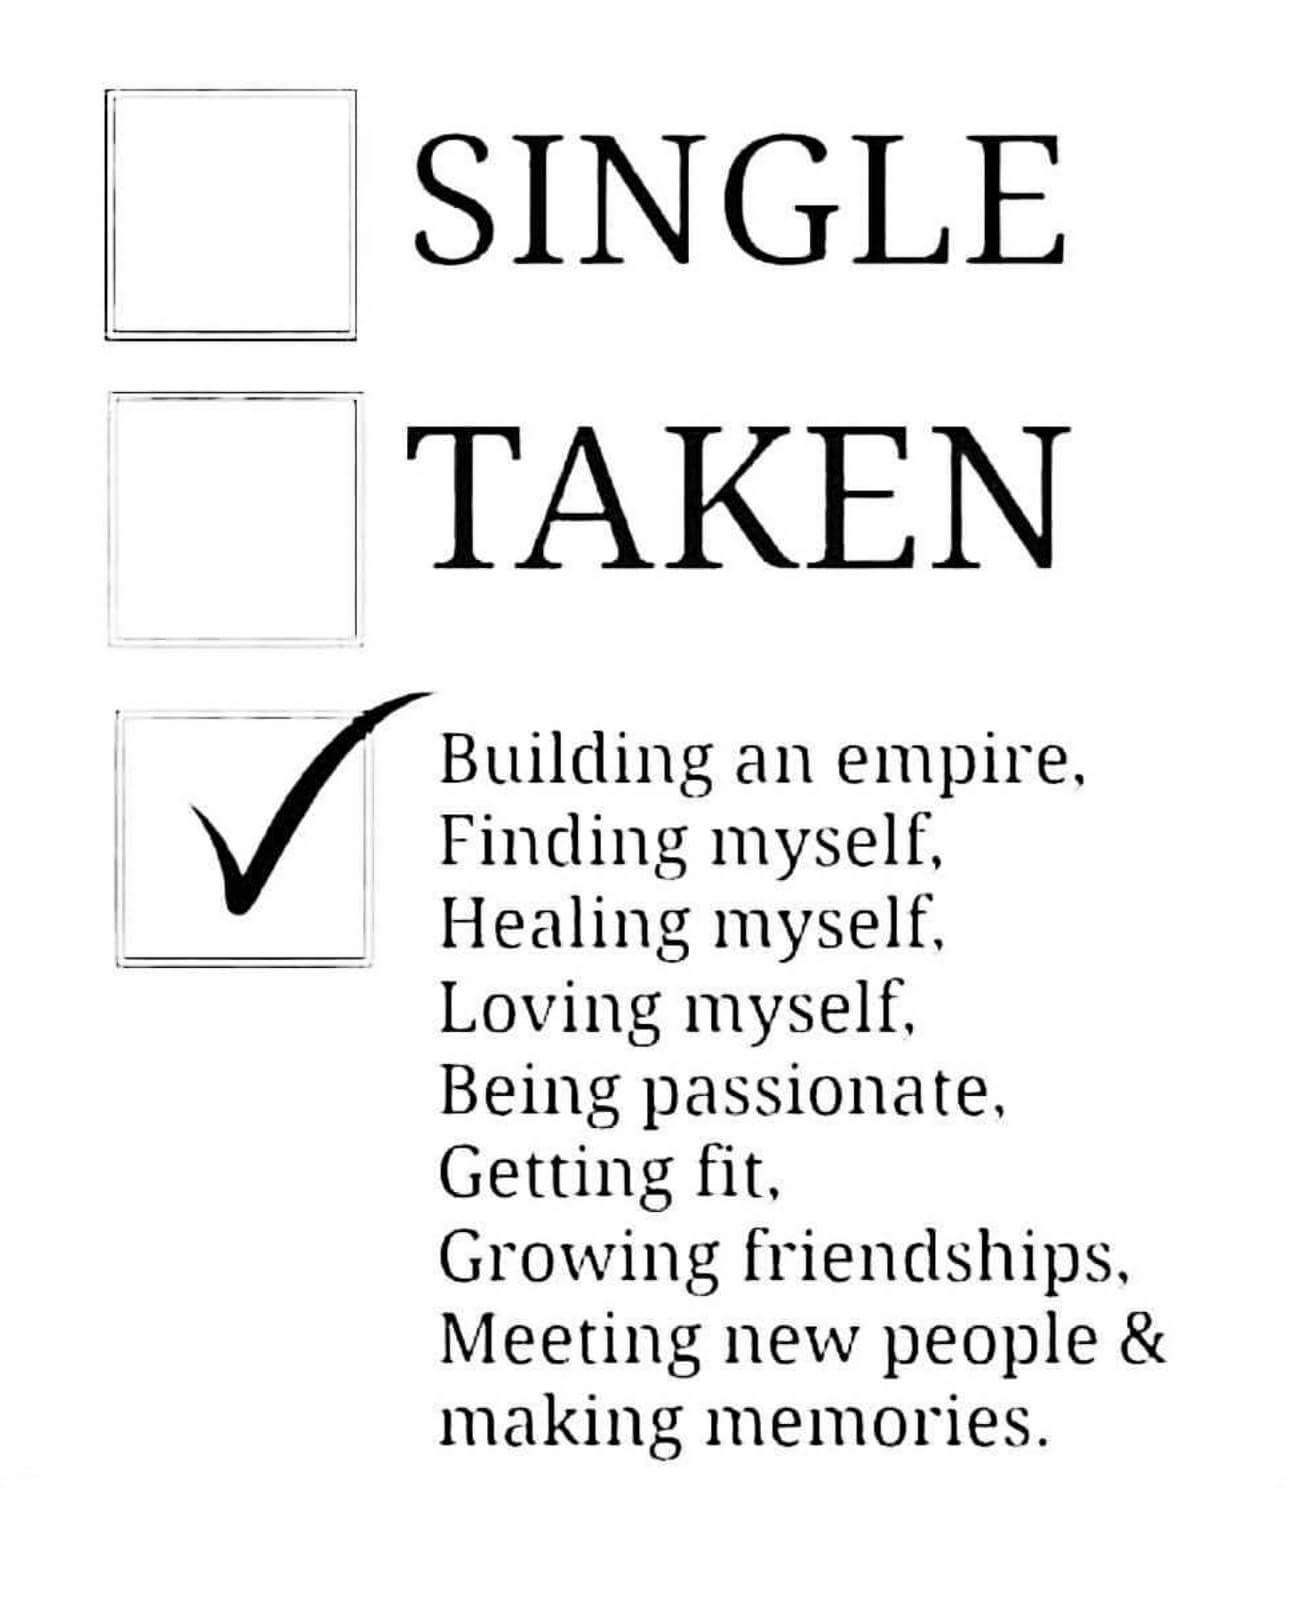 [Image] For all you single folks out there trying to make a better life for yourselves.